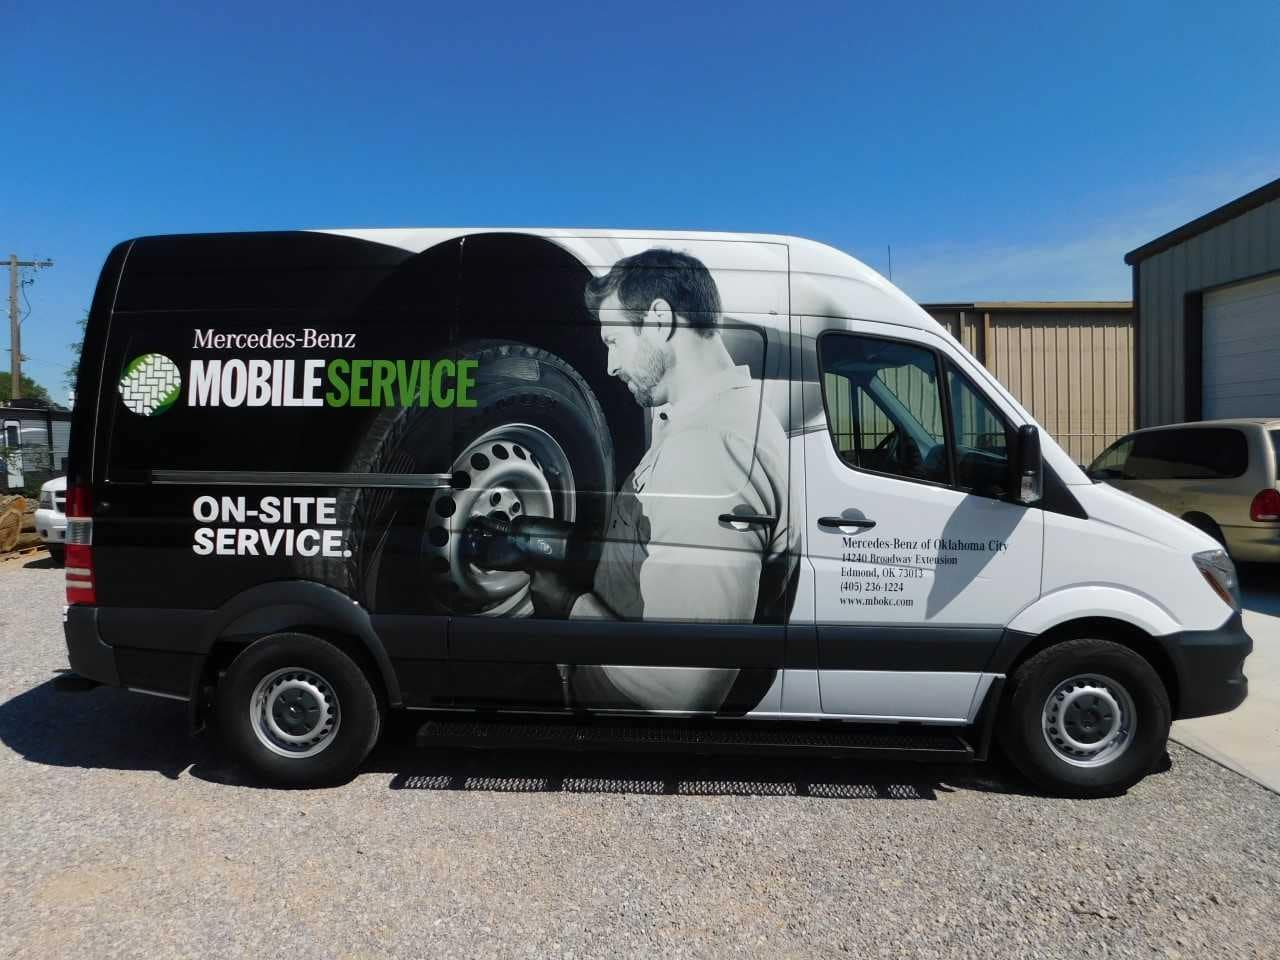 Mobile Service for Mercedes-Benz Vehicles in Oklahoma City